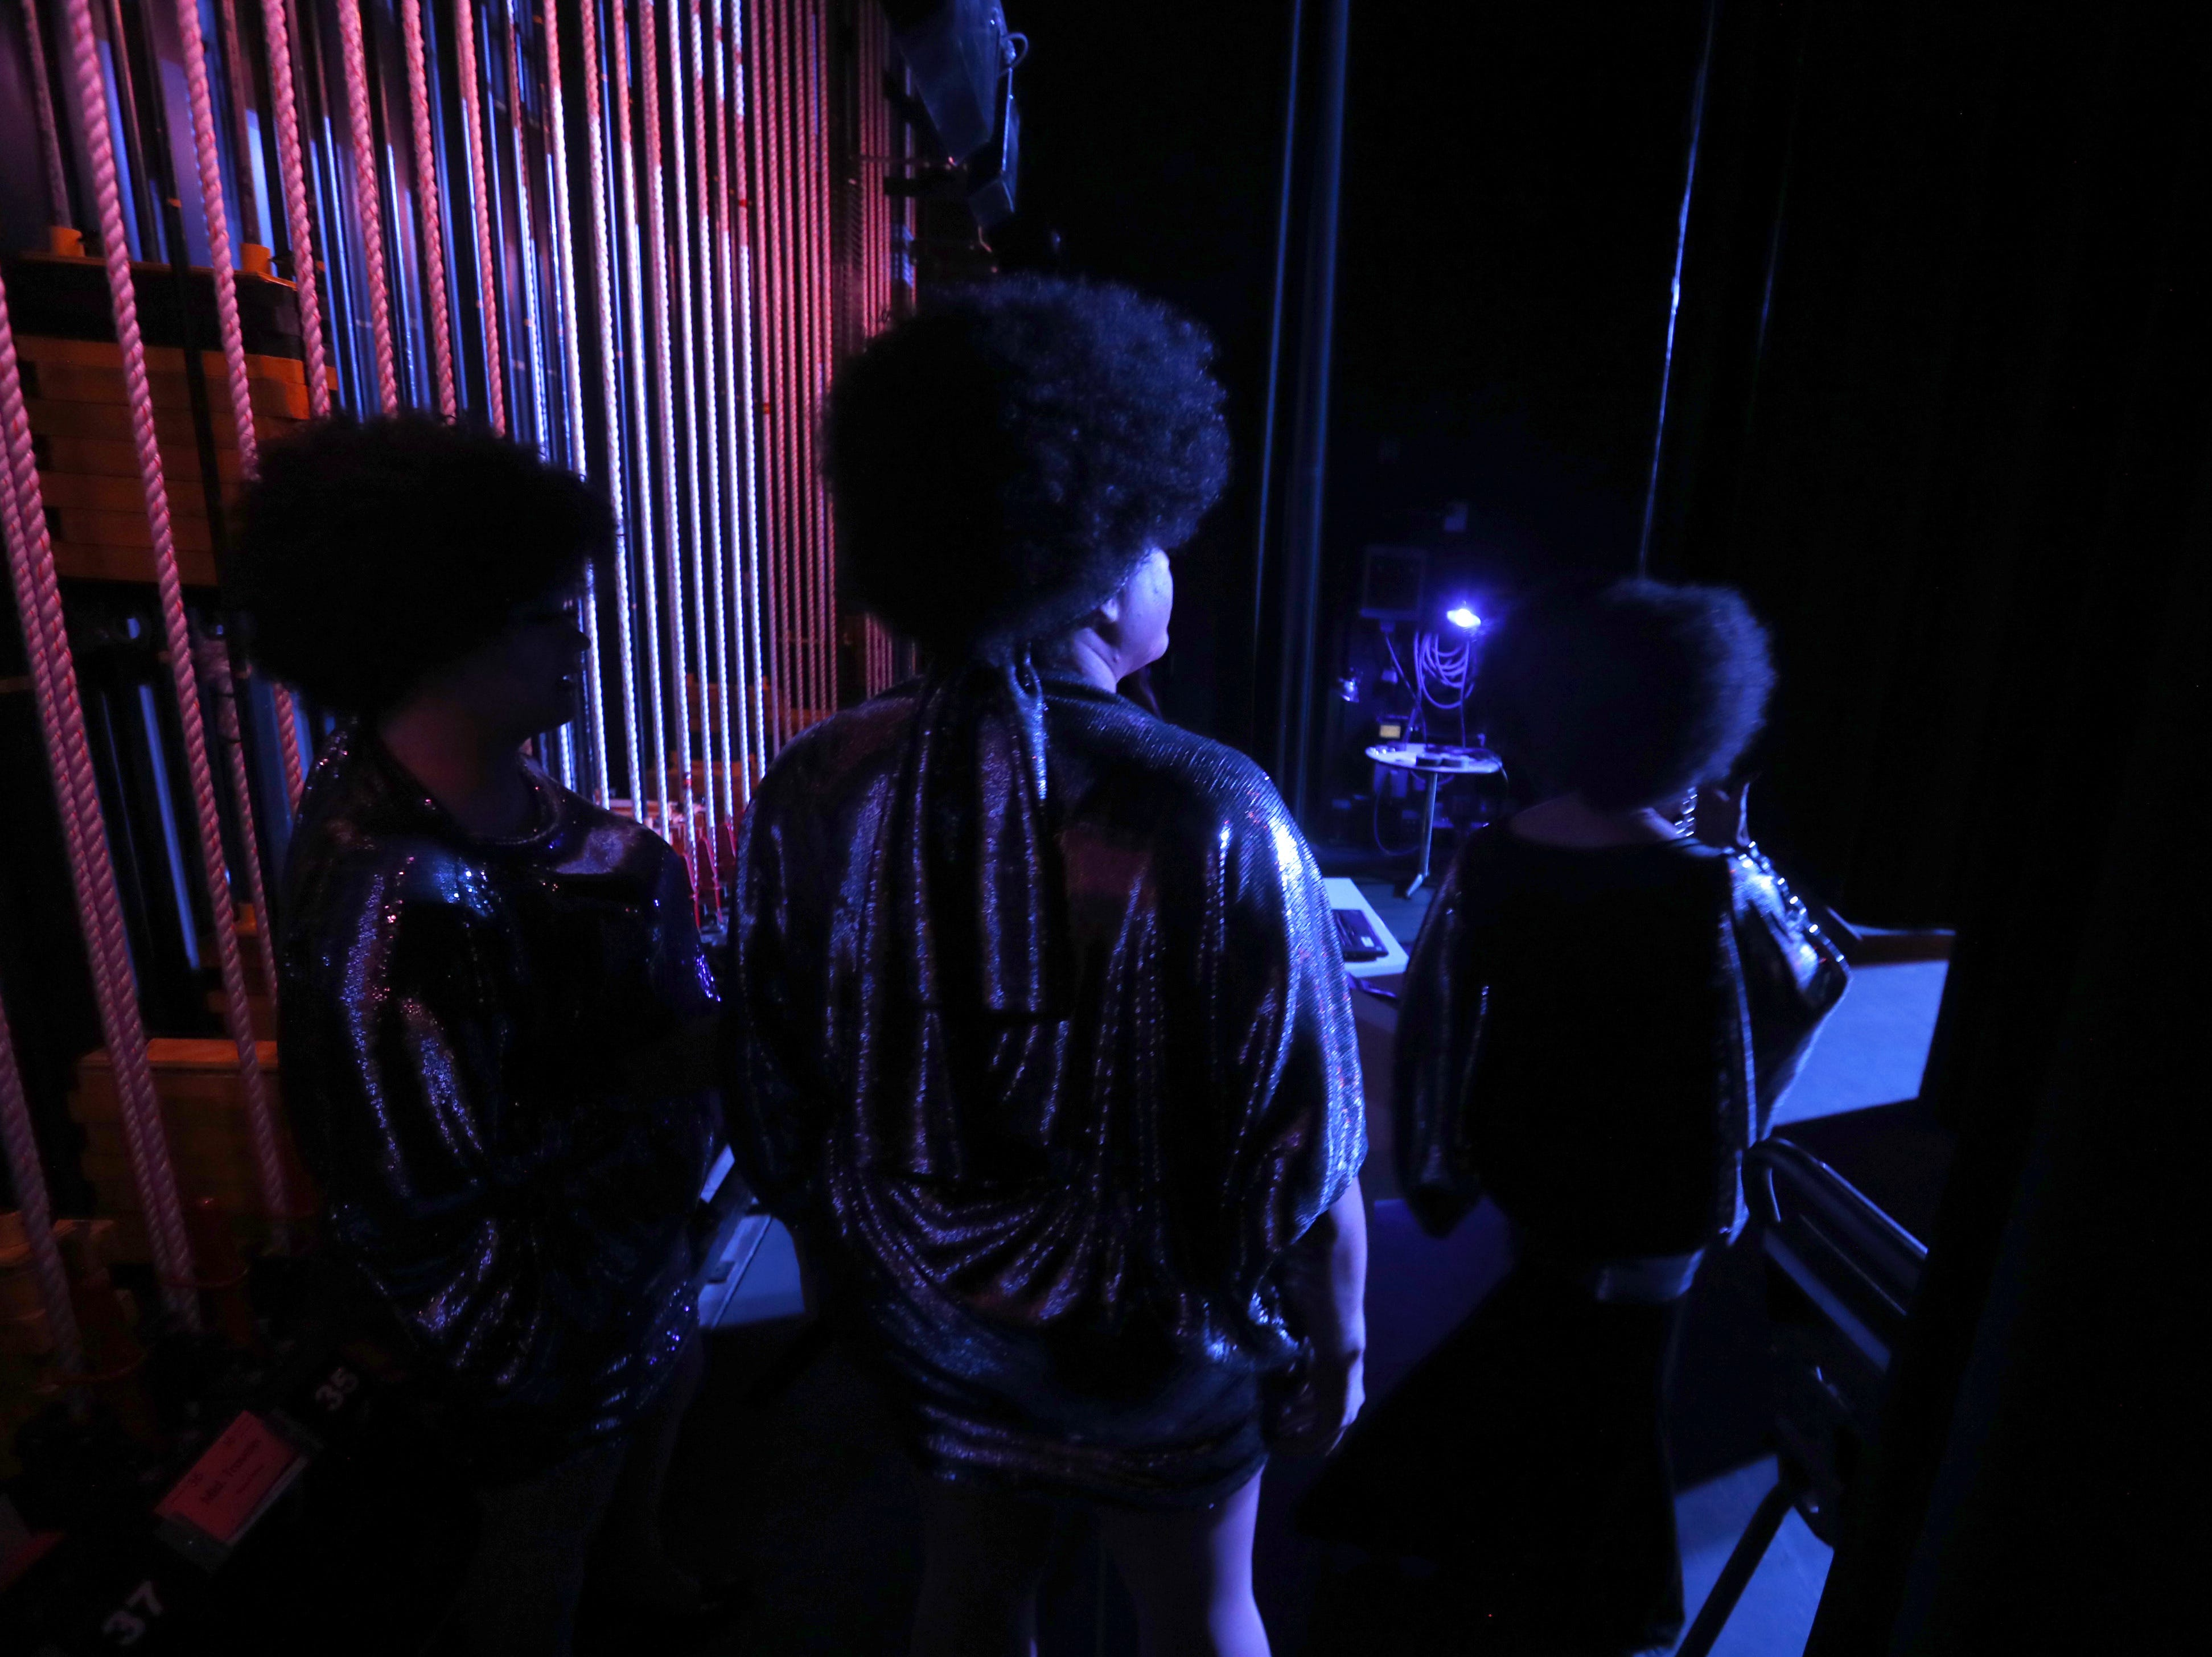 Lucinda Holliday, Queerella Deville and Isis D.Frost prepare backstage for their performance during the Miss Gay Arizona America pageant 2019 at Tempe Center for the Arts on May 11, 2019.